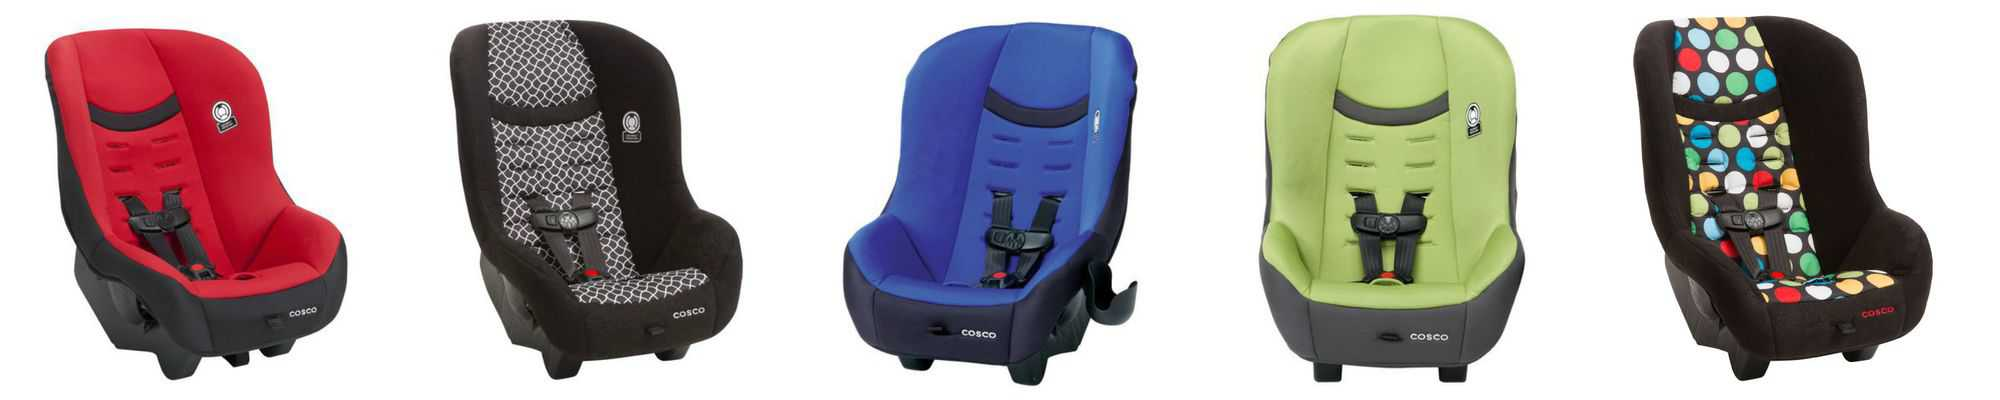 Cosco Scenera Next Convertible Car Seat Review – FAA approved car seat